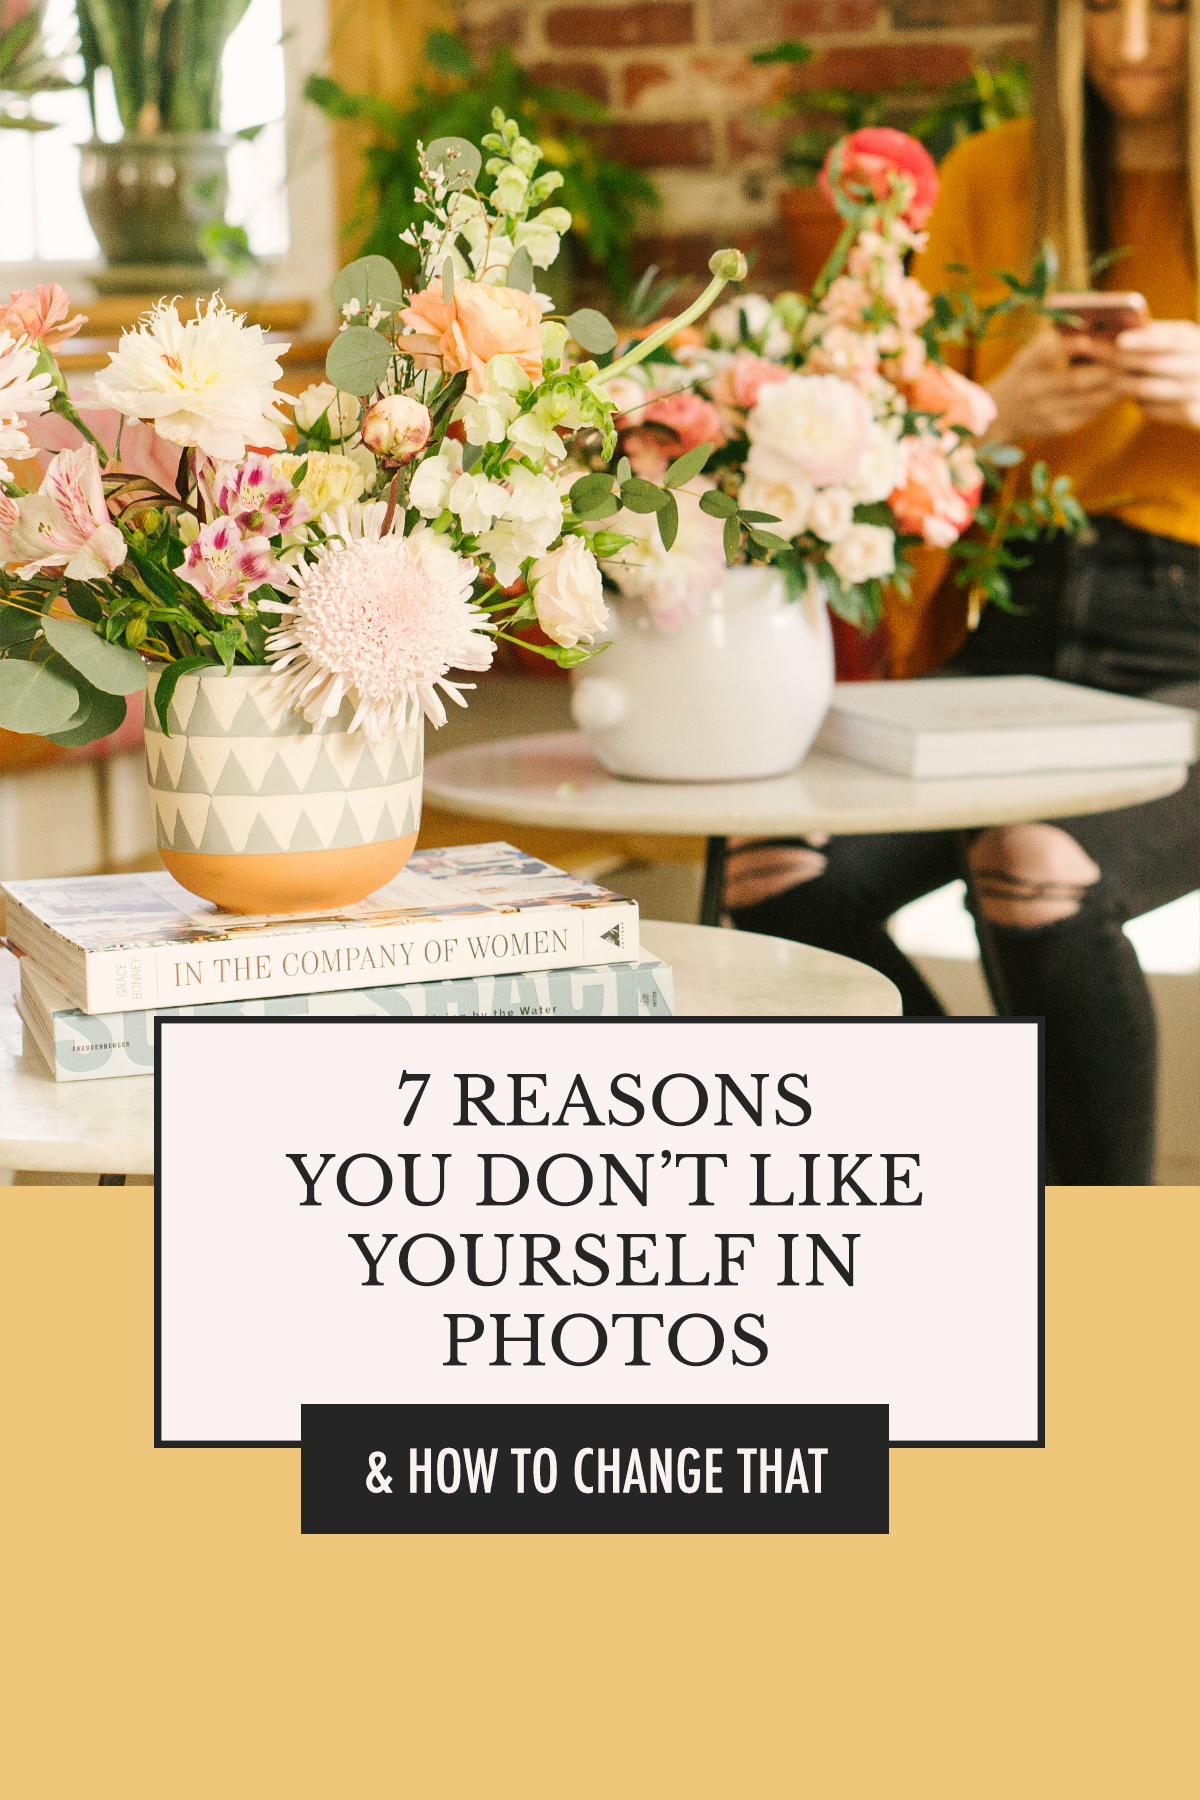 How to Look Better in Photos Beyond Posing | 7 Reasons You Don't Like Yourself in Photos & How to Change That | Alexis the Greek blog